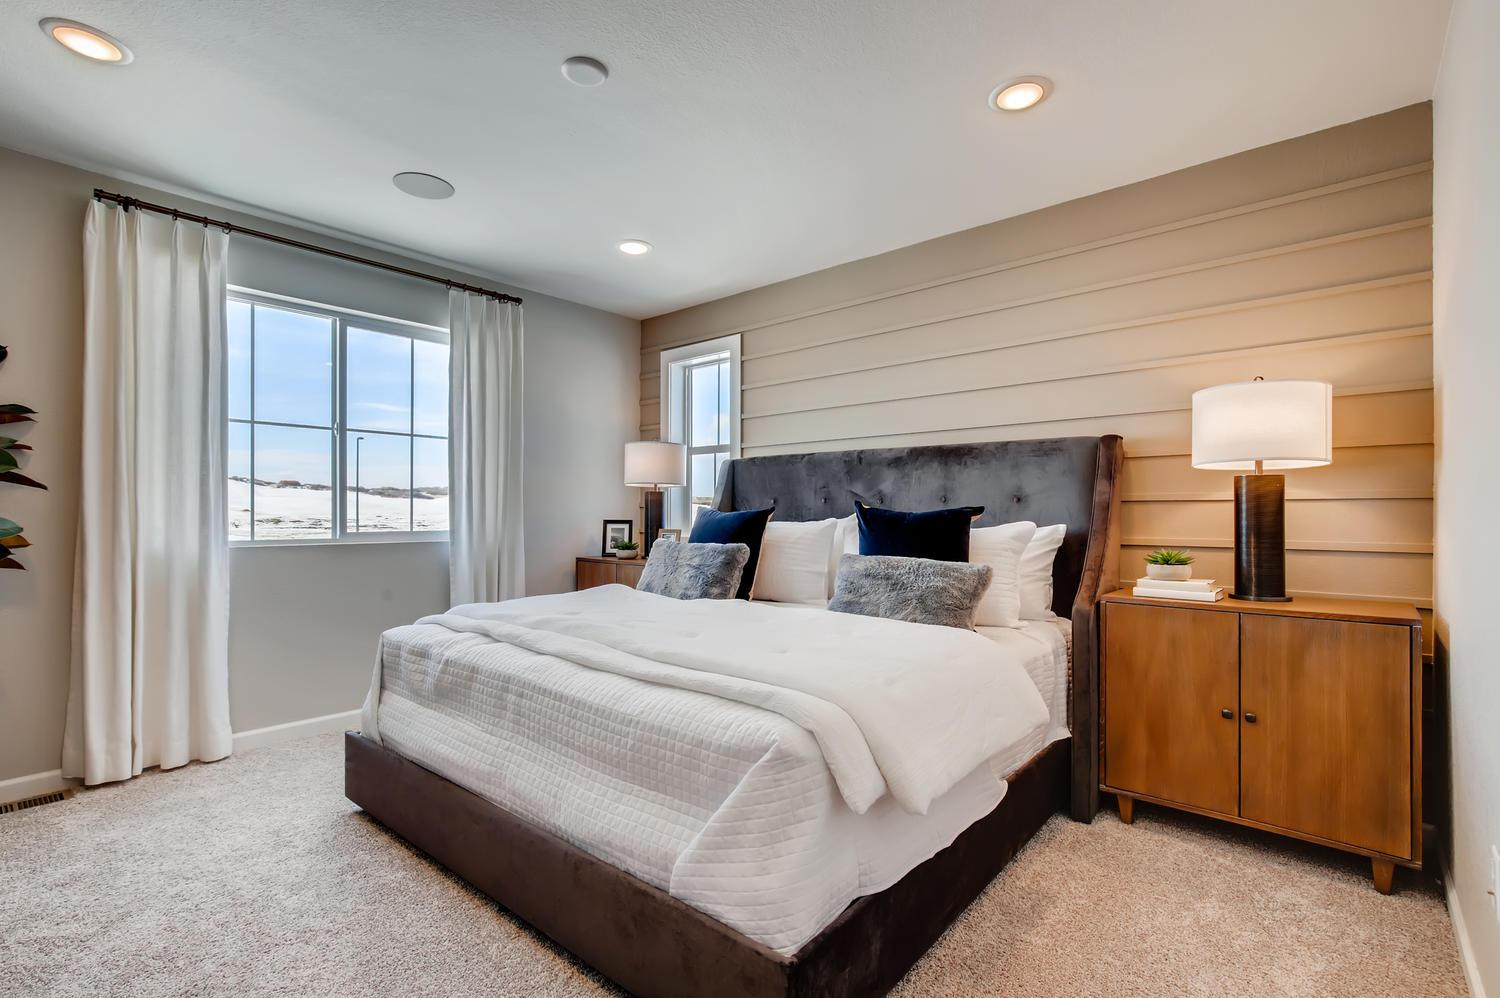 Bedroom featured in the Copper (Residence 29203) By Century Communities in Denver, CO